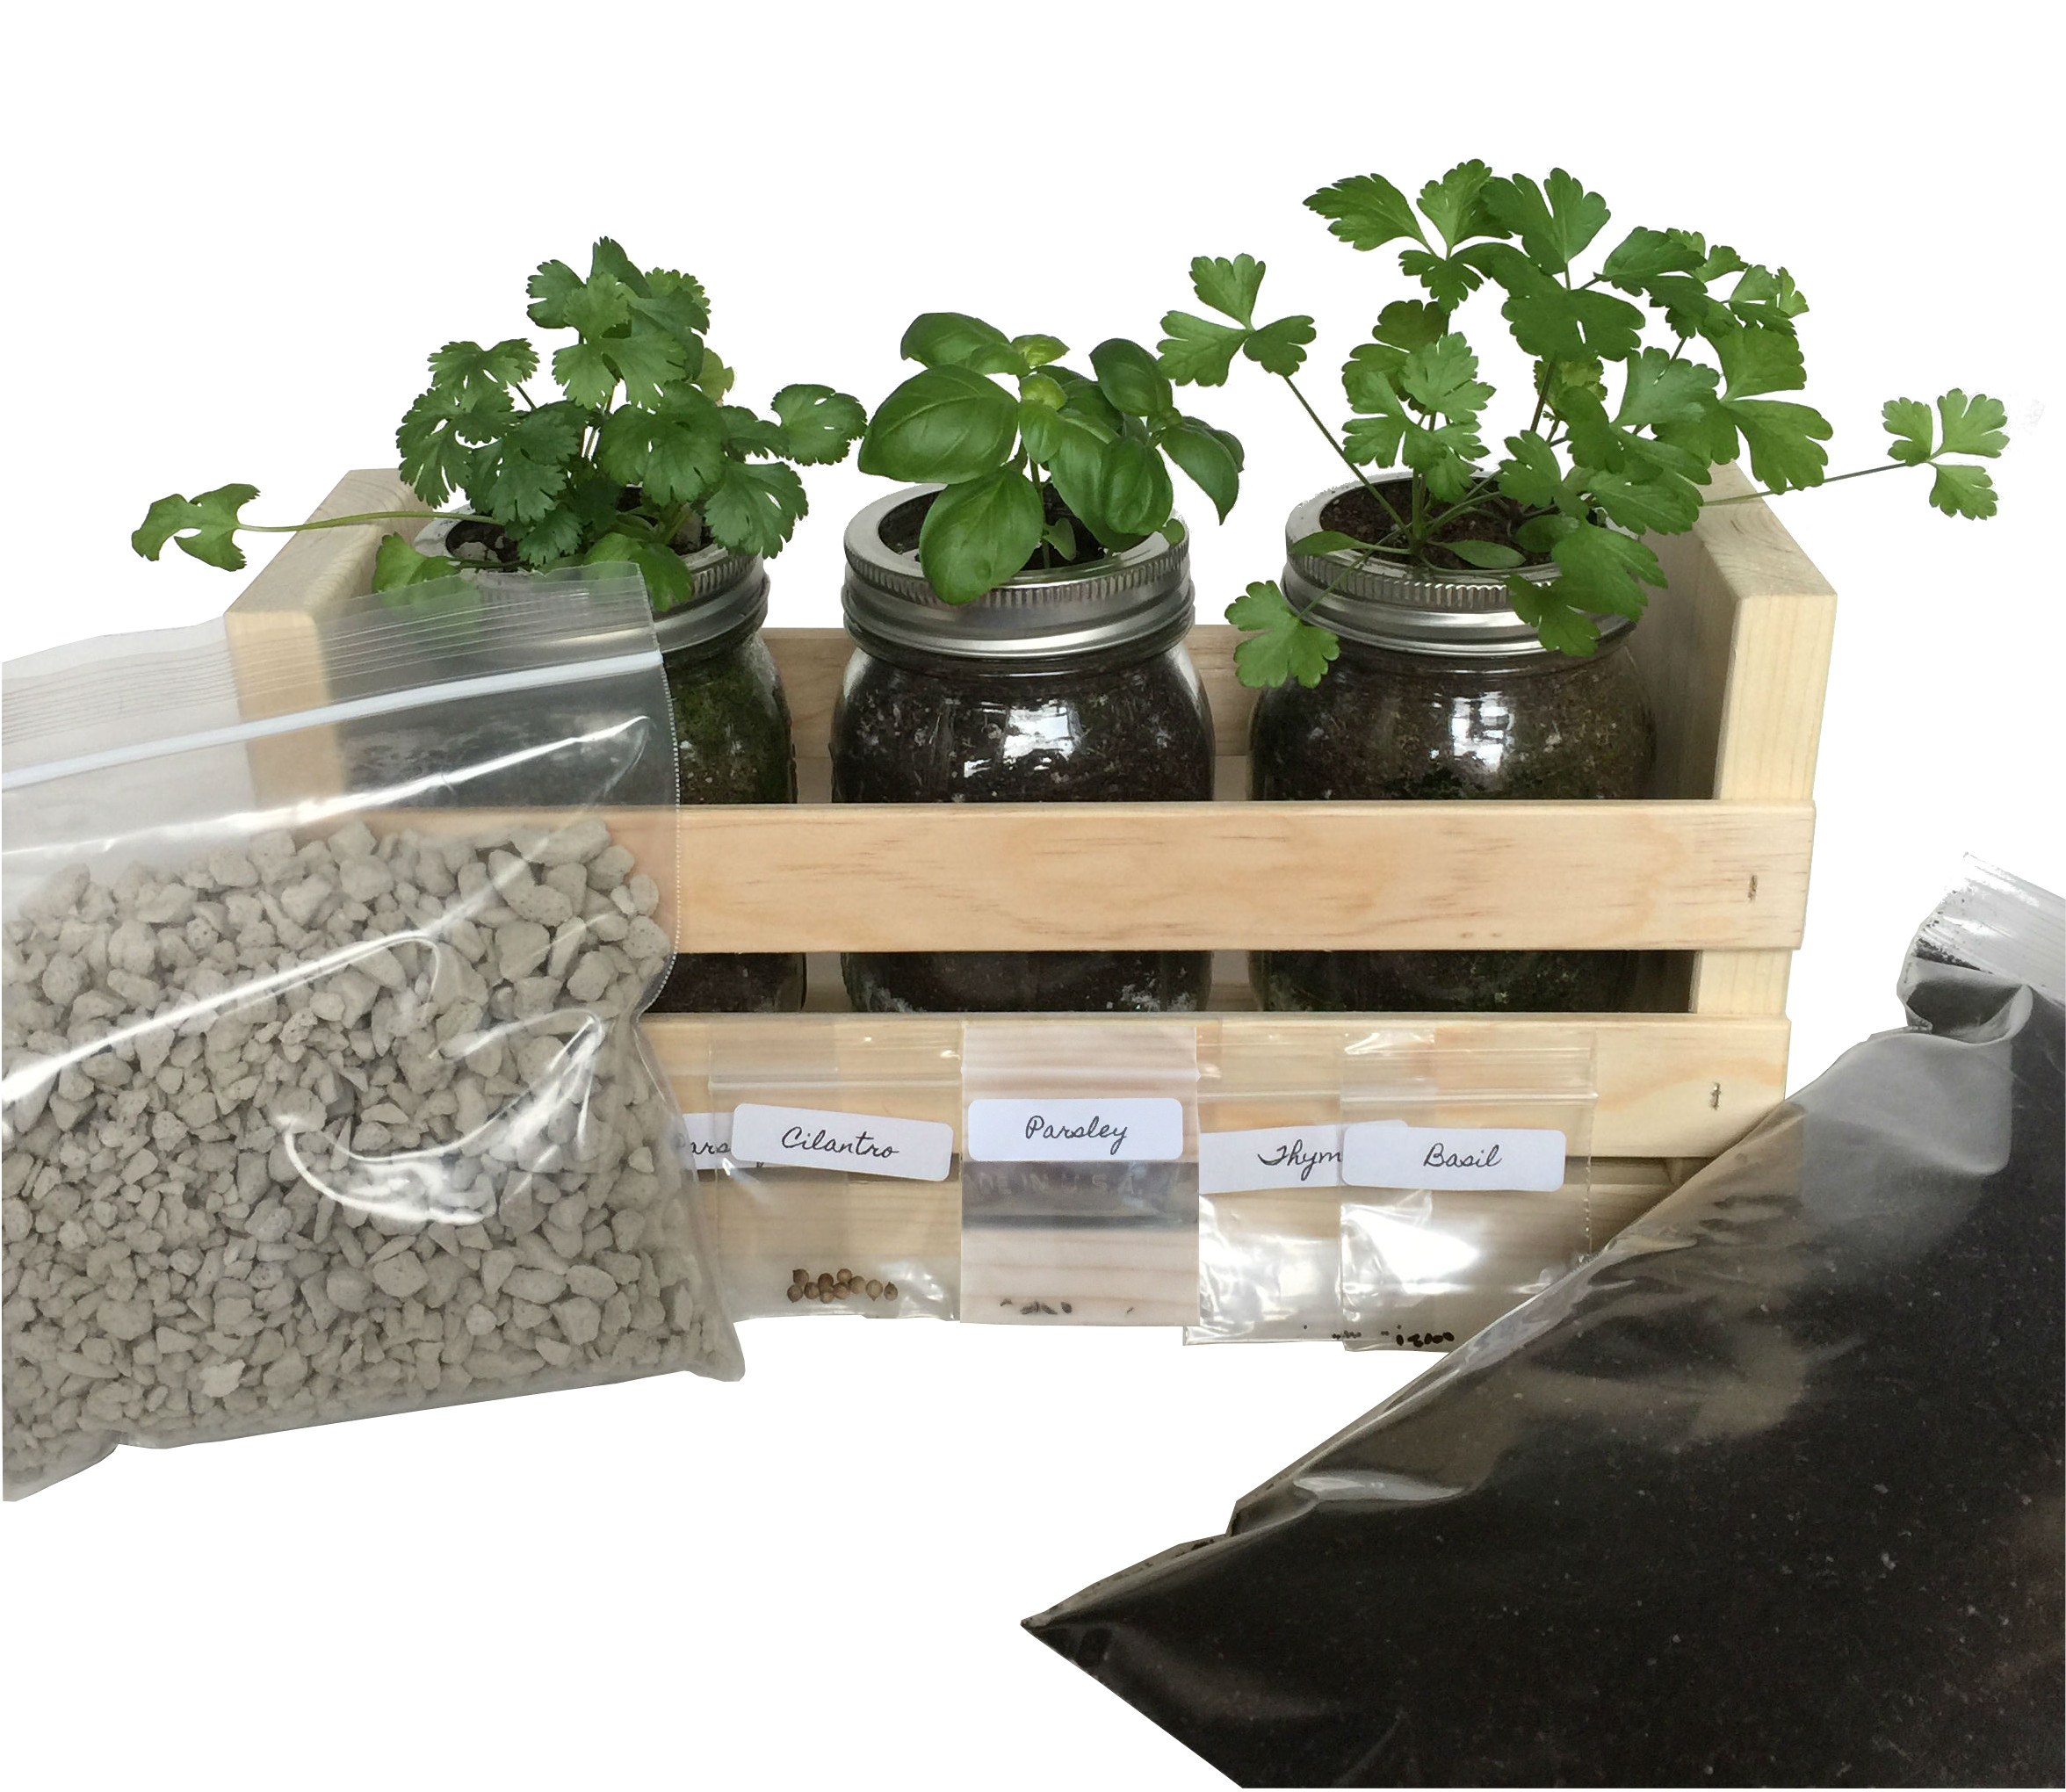 Herb Kits For Indoors: Buy Kitchen Herb Garden Kit